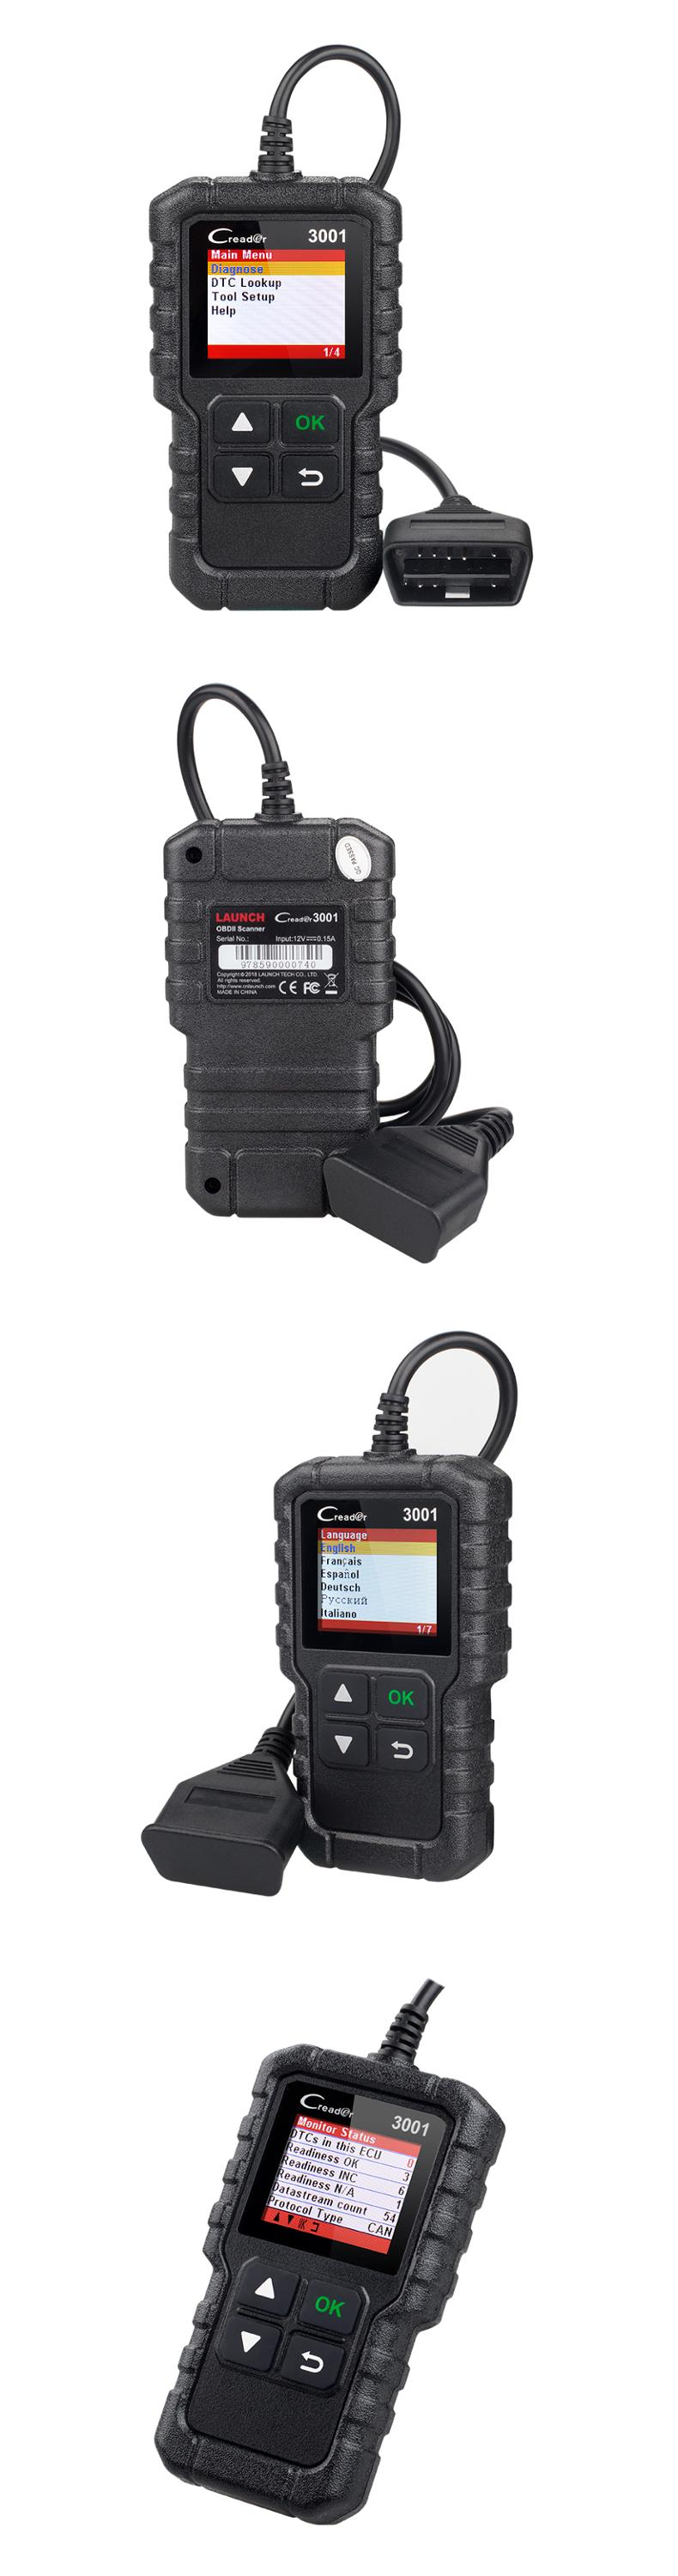 Newest LAUNCH X431 CR 3001 OBDII/EOBD Universal Diagnostic Scan Tool